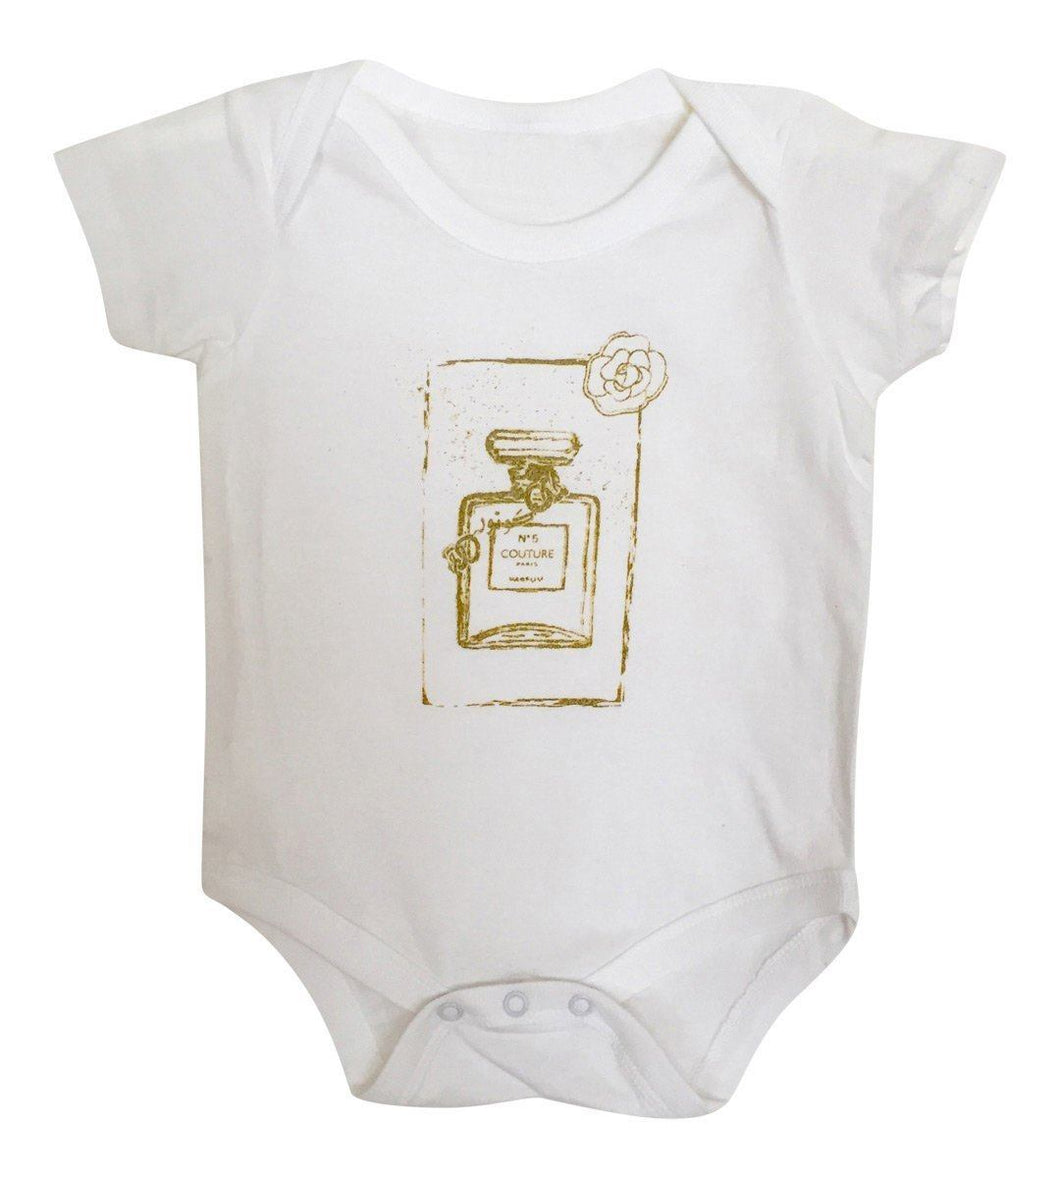 White Baby Couture Perfume Bottle Onesie